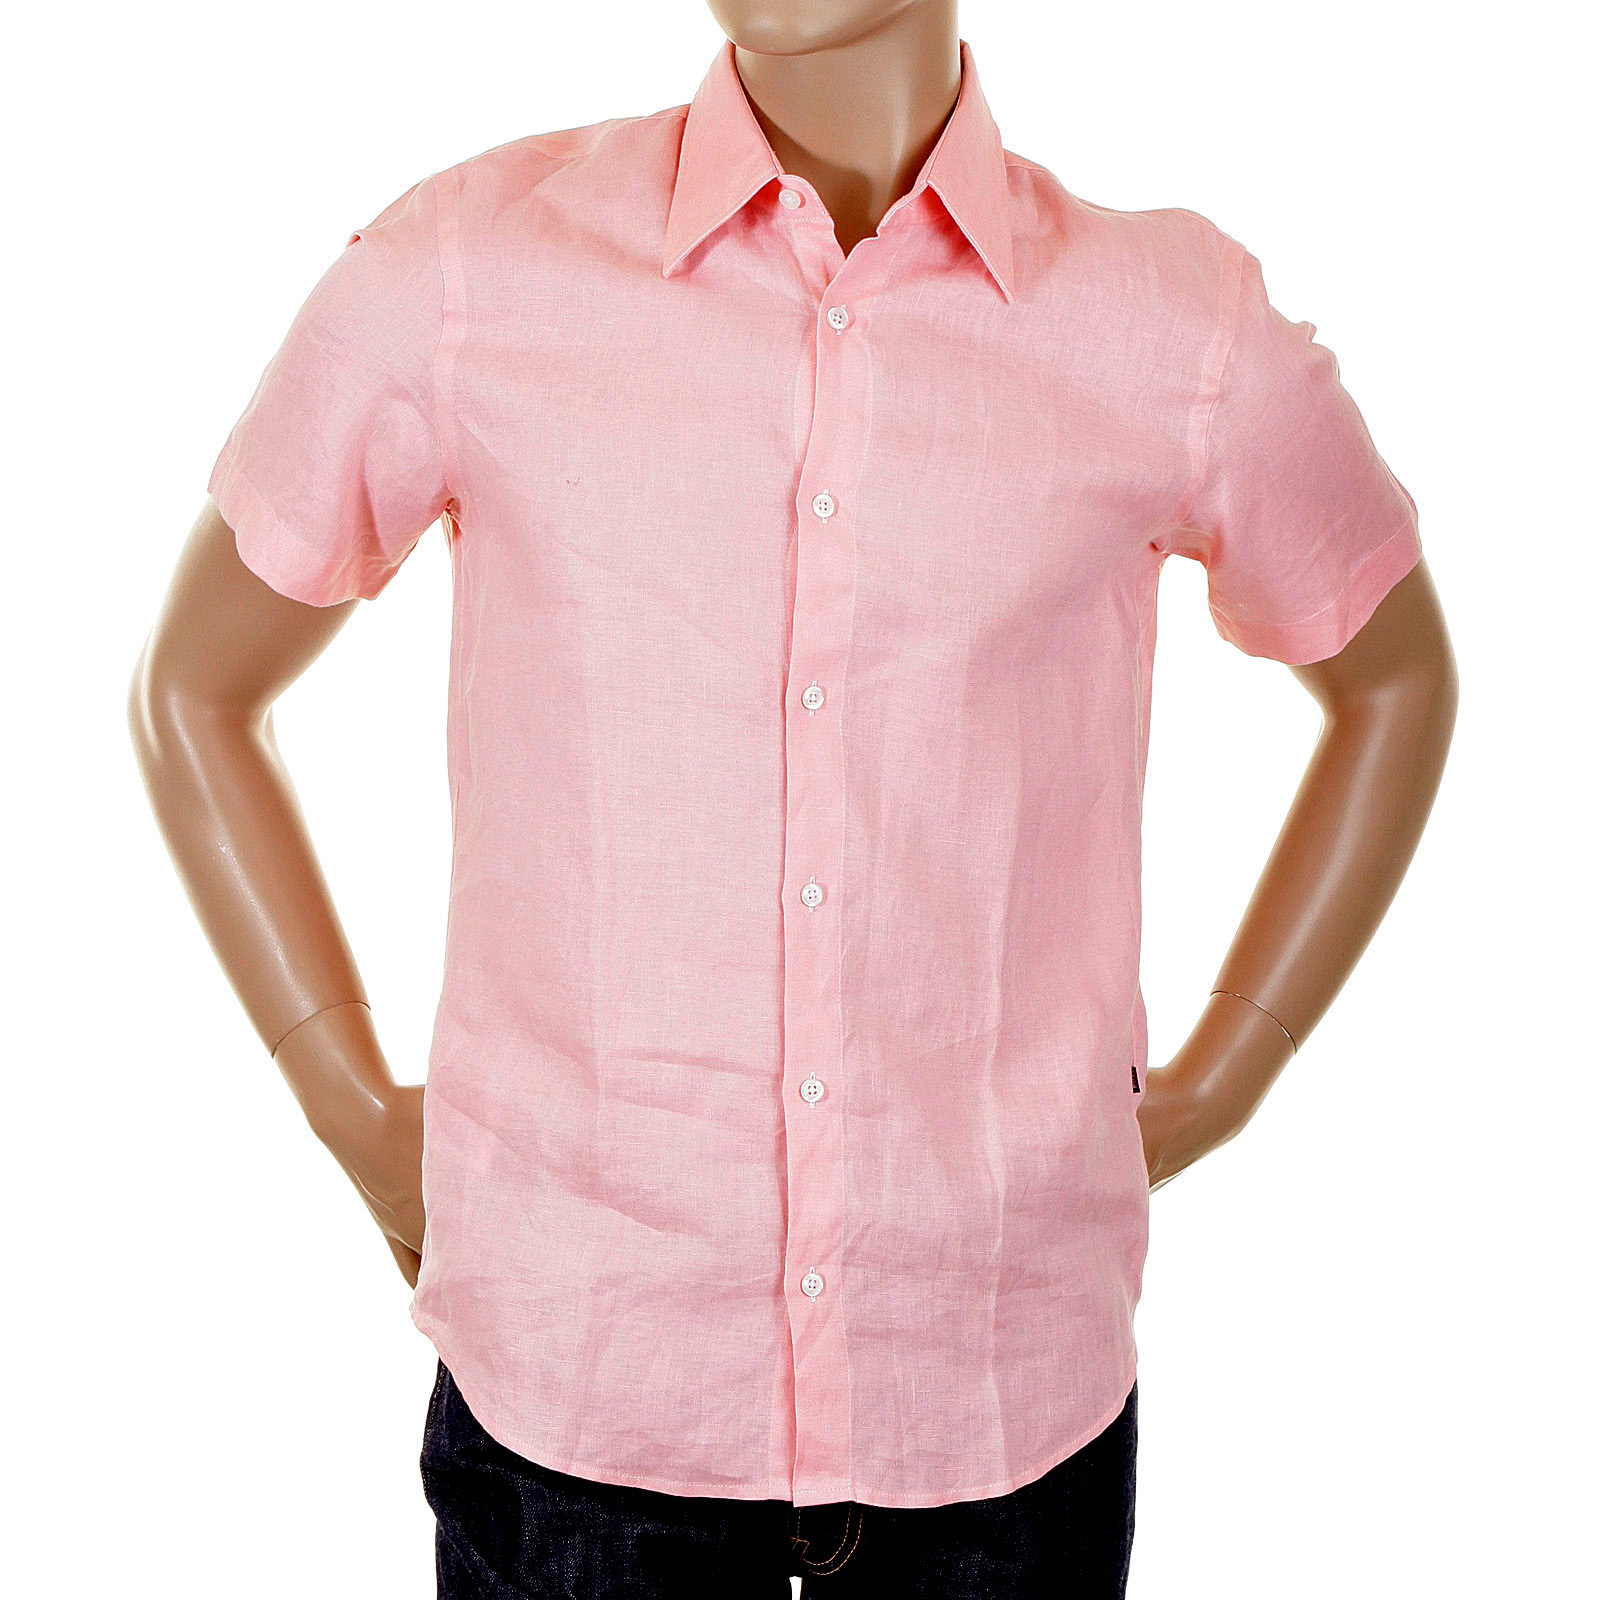 Pale Pink Shirt | Is Shirt